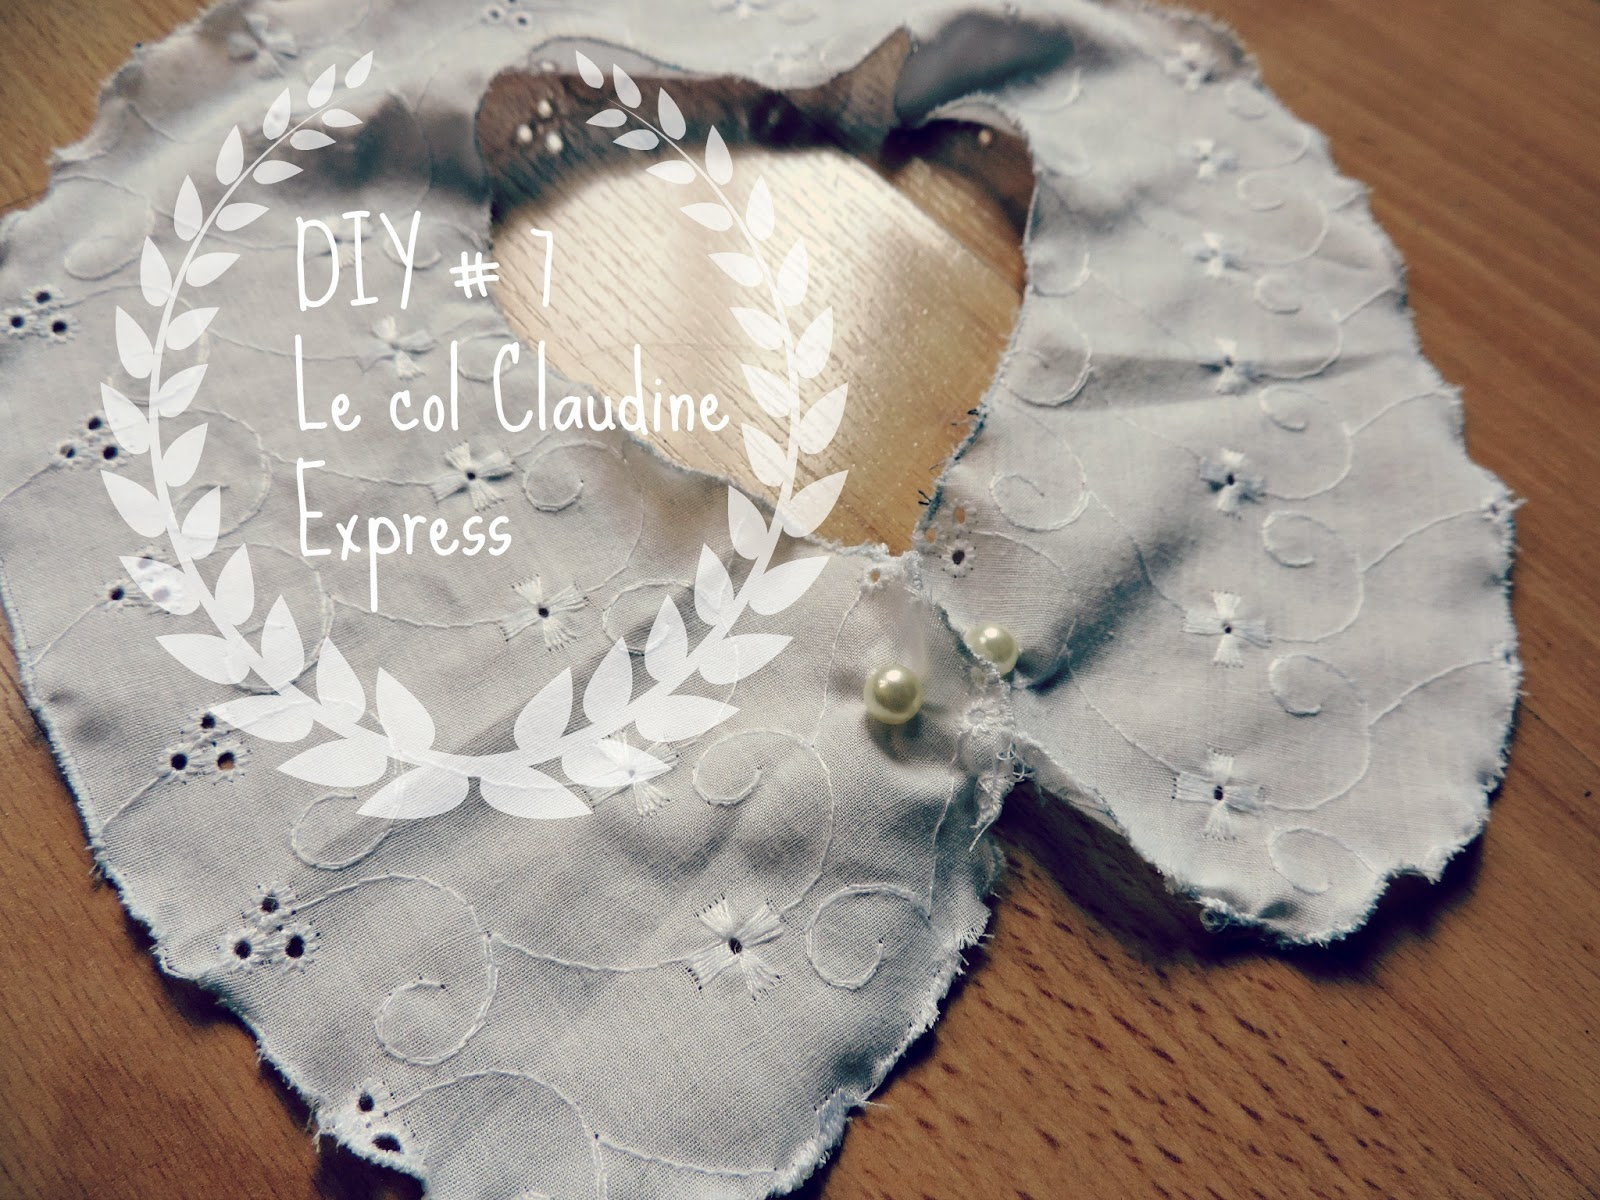 http://mynameisgeorges.blogspot.com/2014/04/diy-7-le-col-claudine-express.html